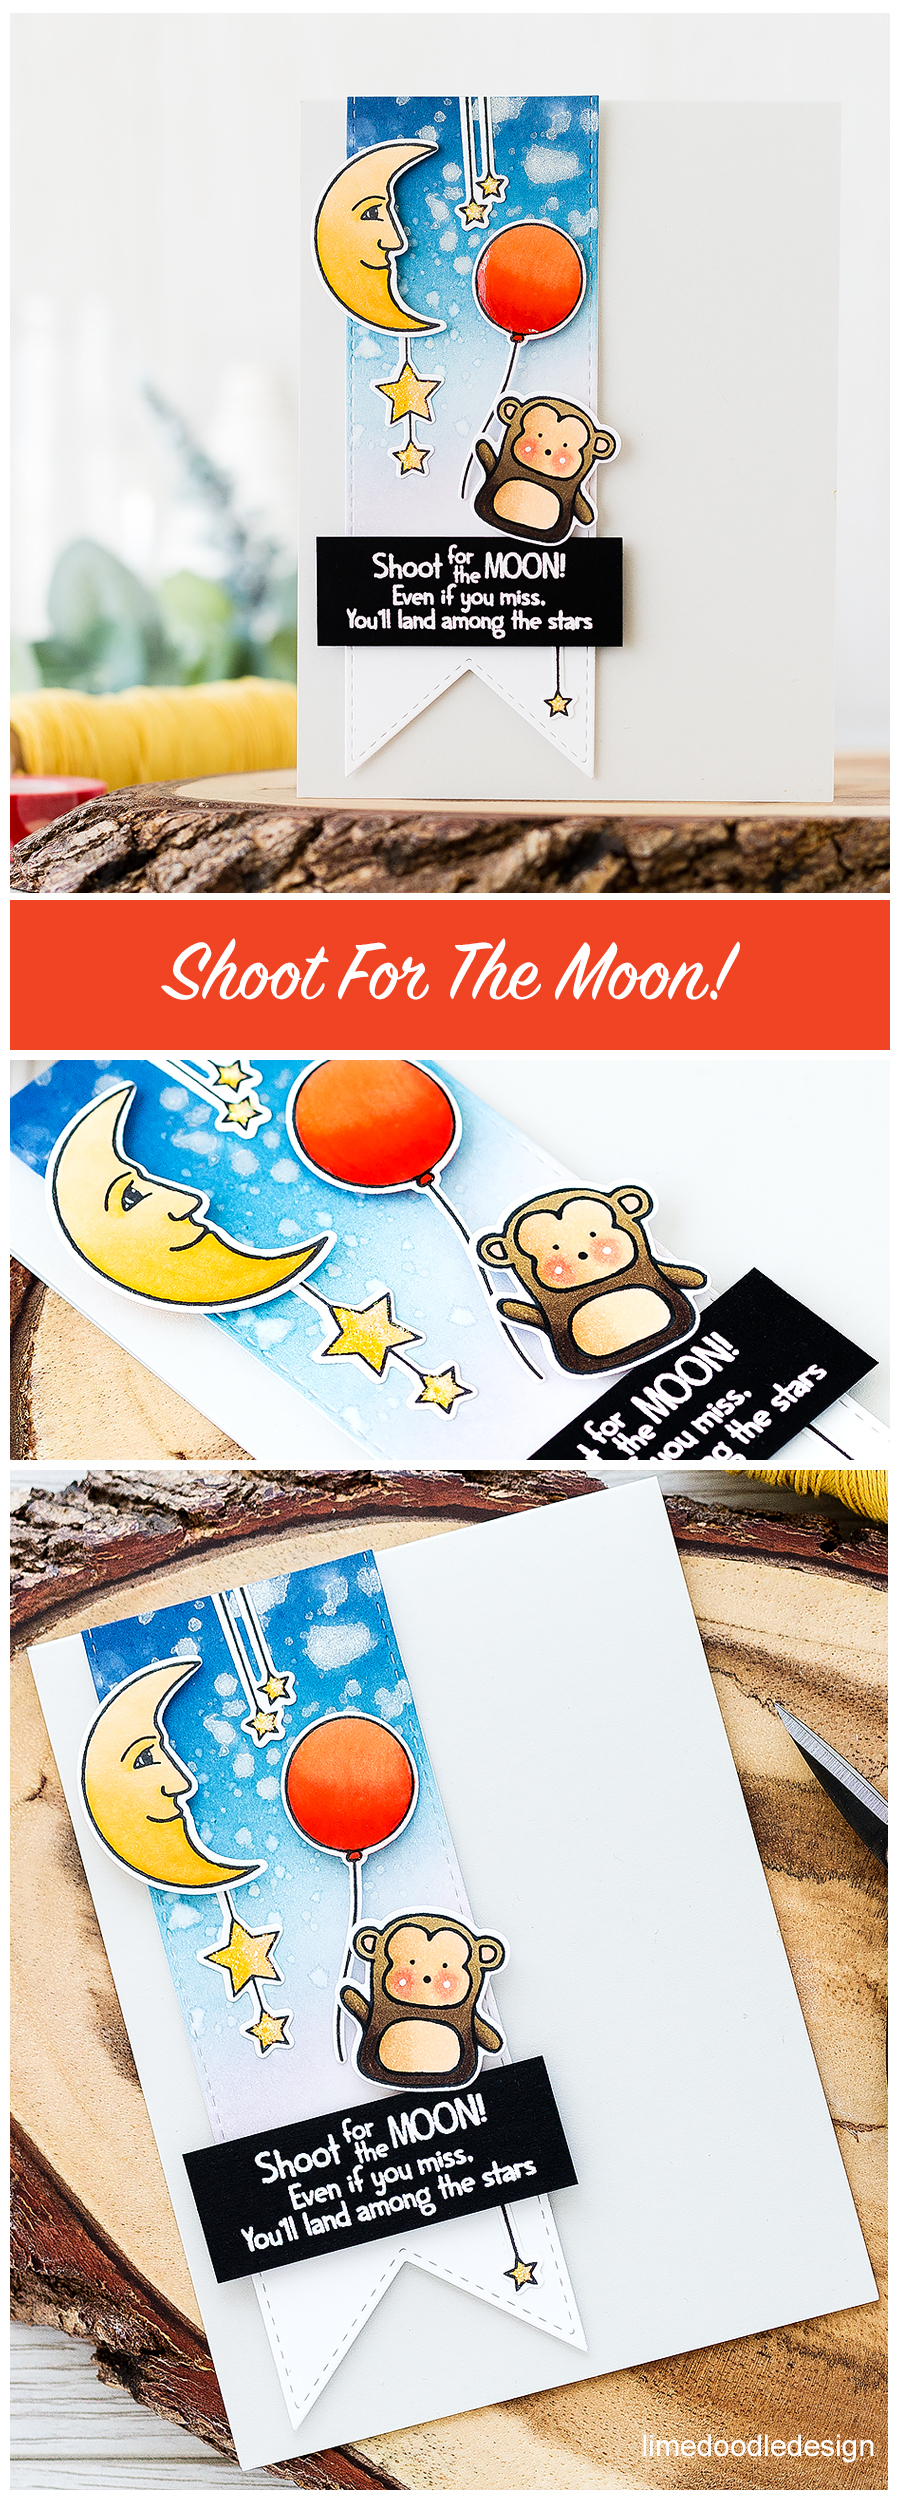 Shoot for the moon encouragement card. Find out more by clicking on the following link: https://limedoodledesign.com/2016/08/shoot-for-the-moon/